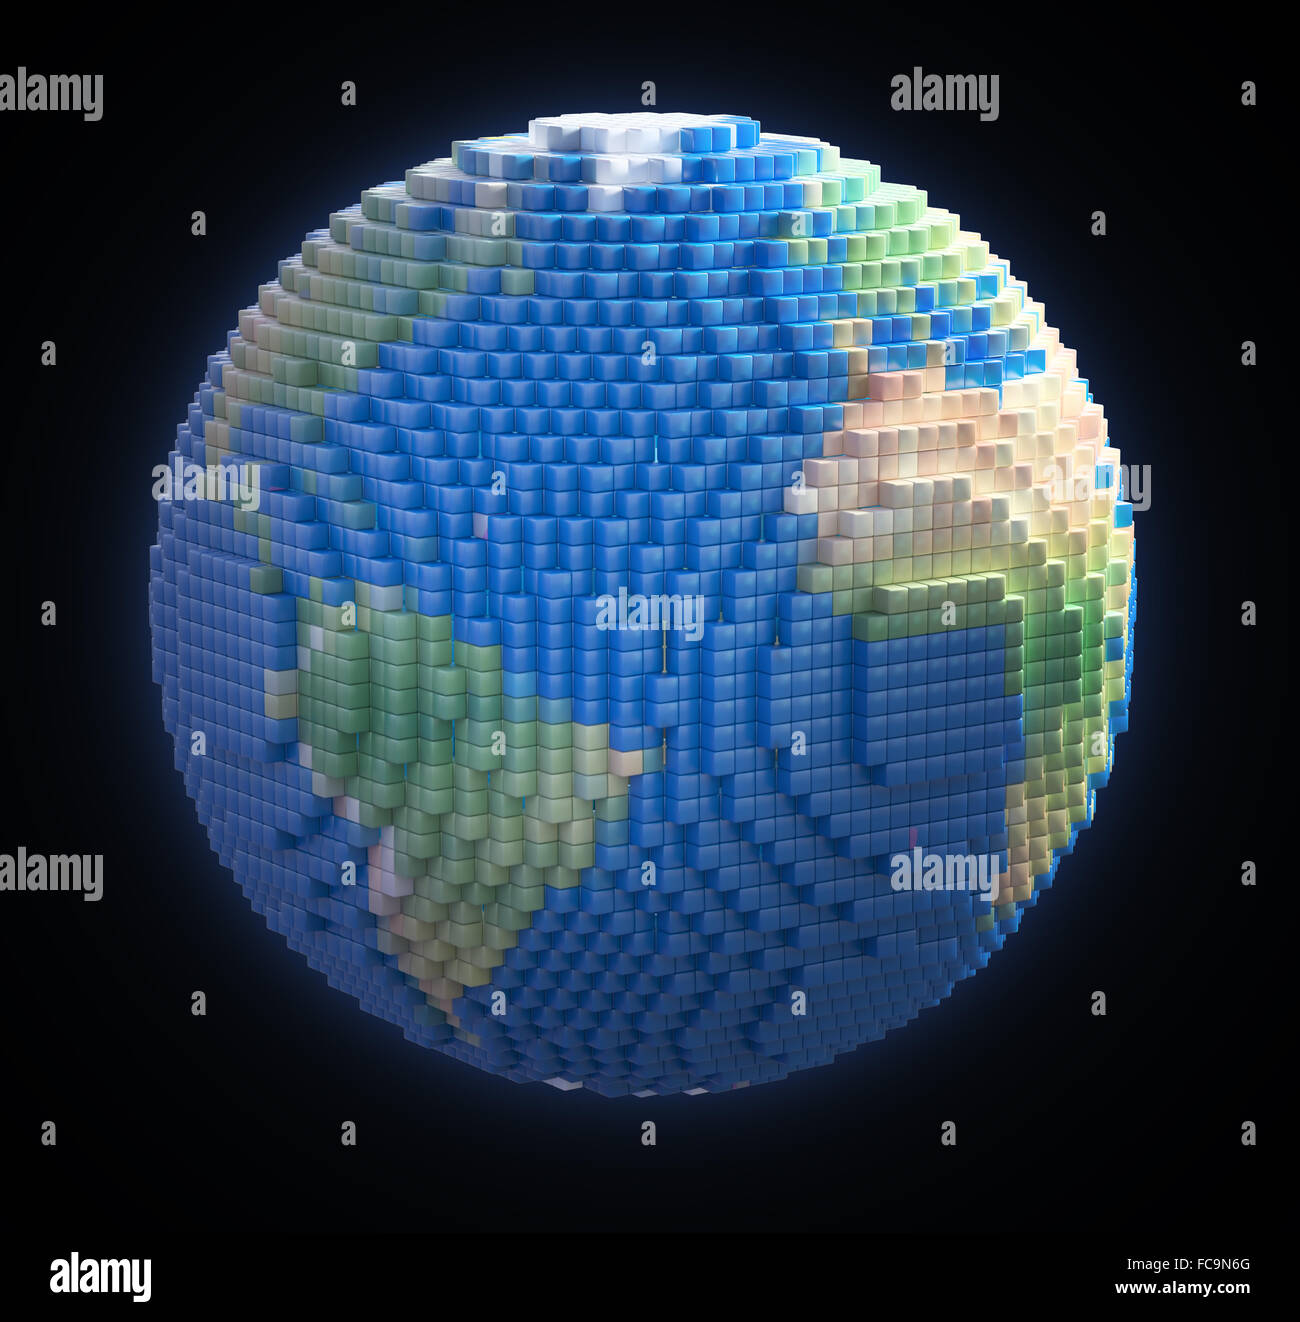 Globe de la terre faite de cubes 3d voxel Photo Stock